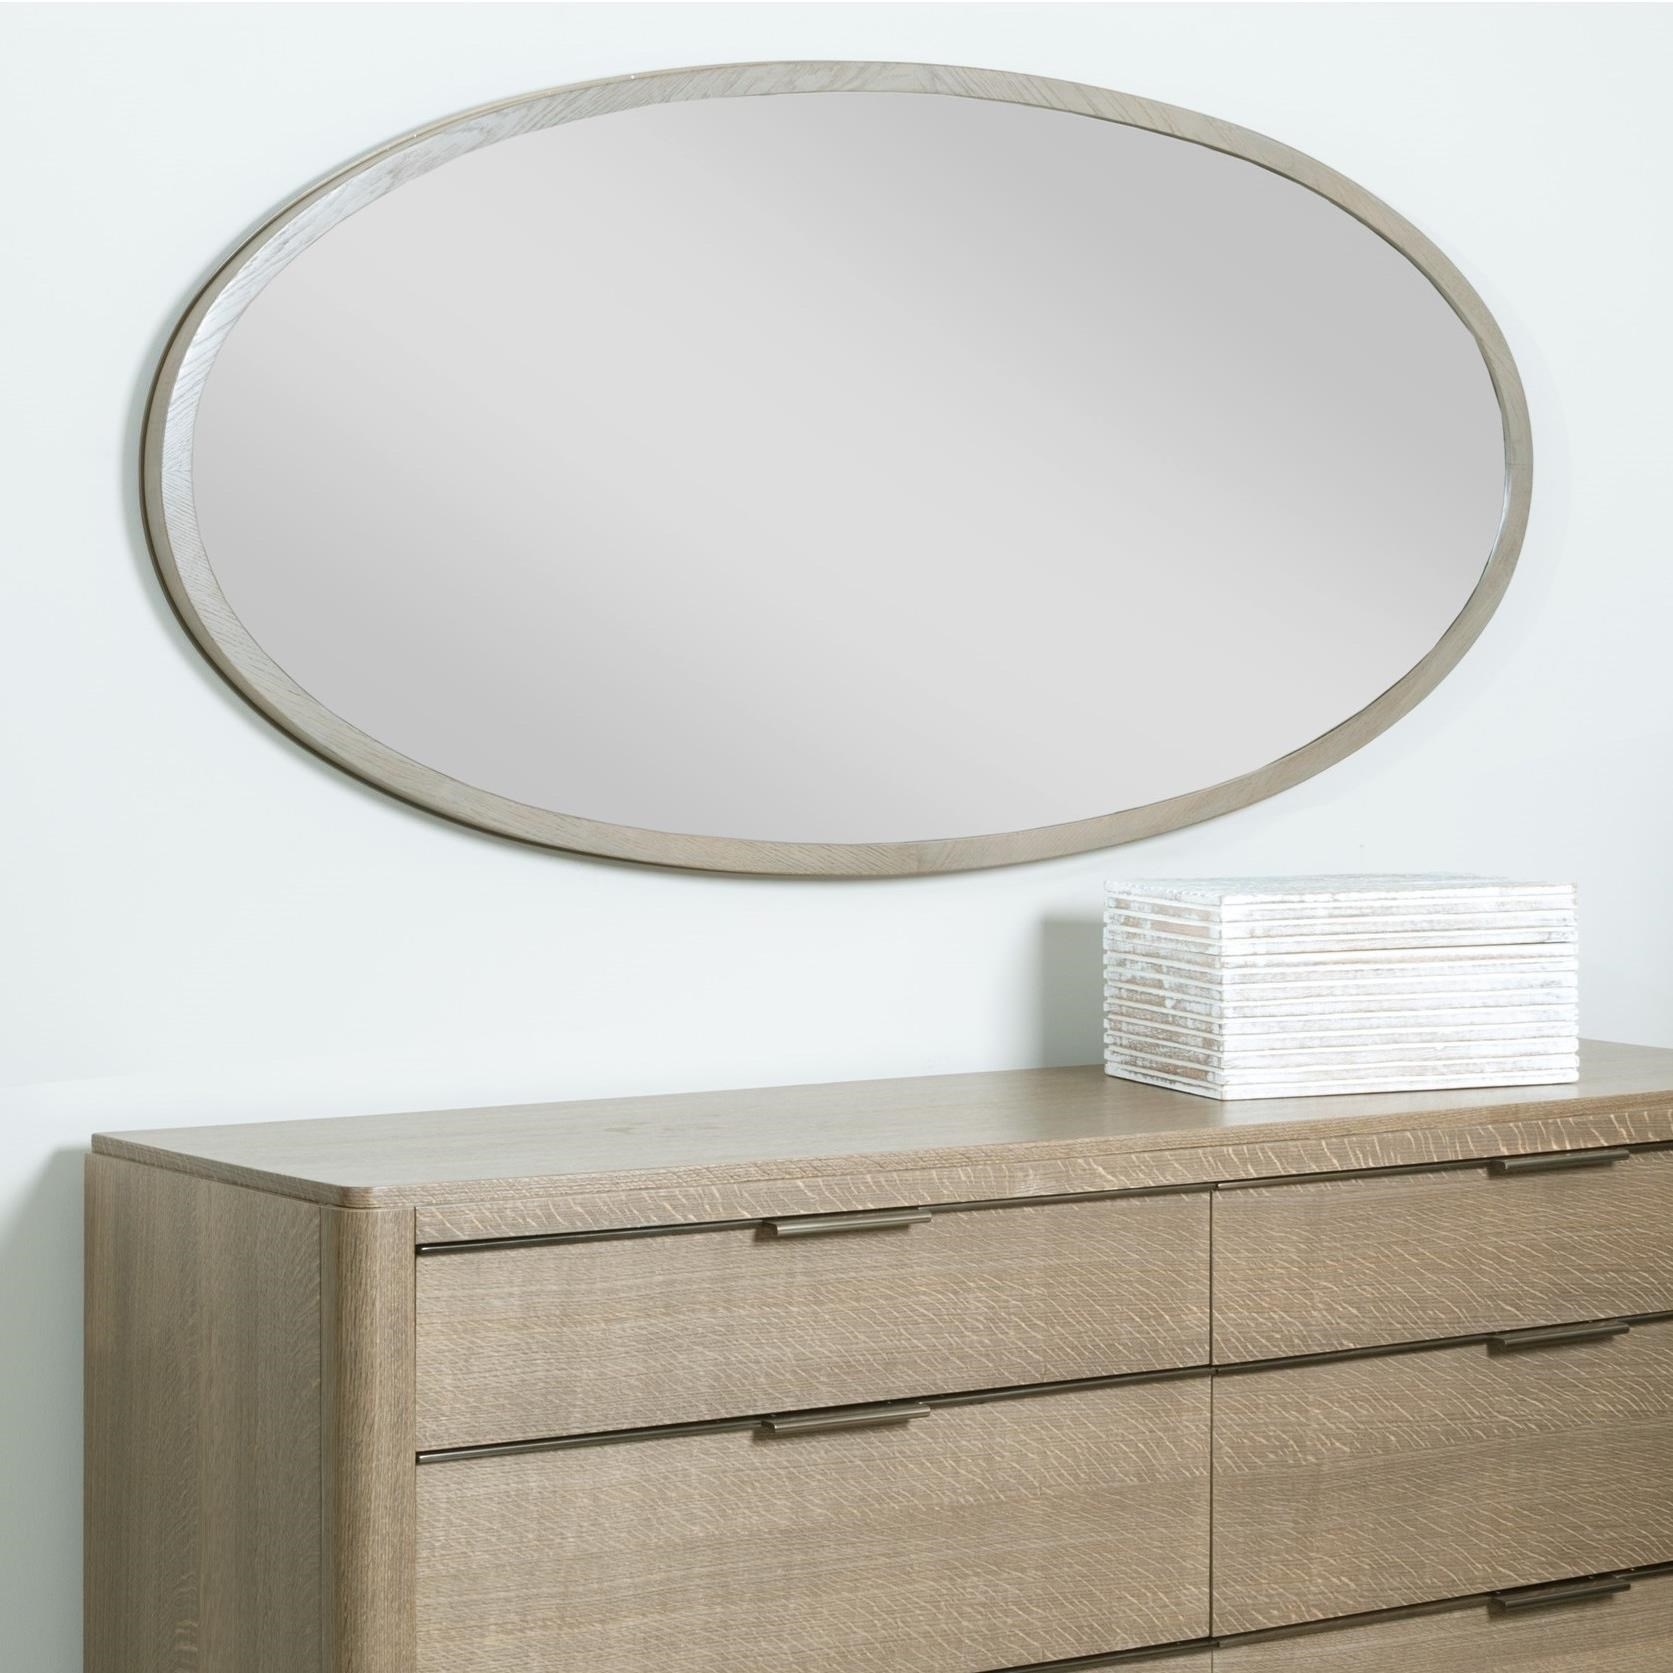 American Drew Ad Modern Classics Ramsey Oval Mirror - Item Number: 603-015